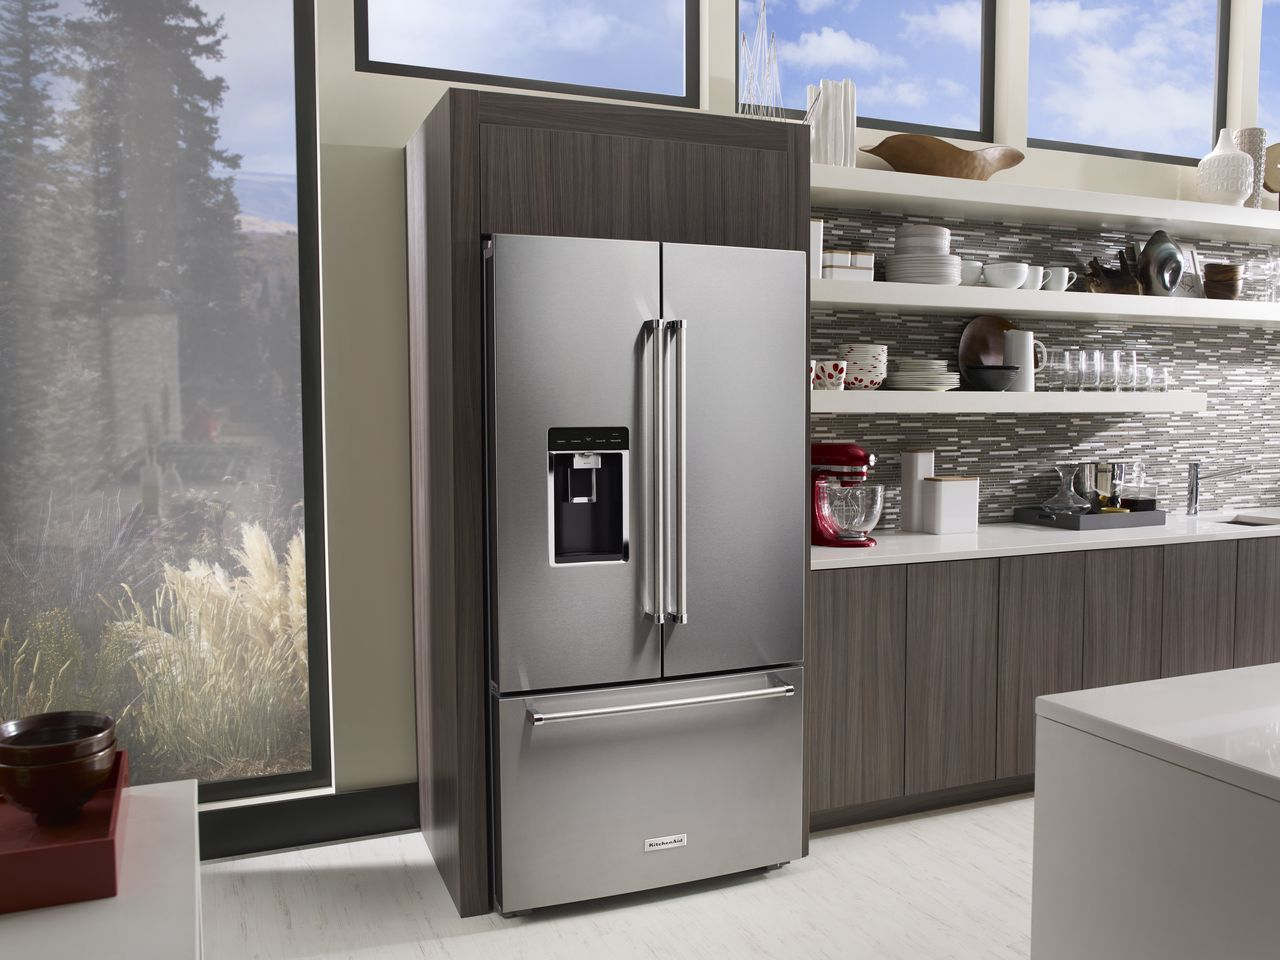 The Big Three Door Fridge By Kitchenaid Home Appliances